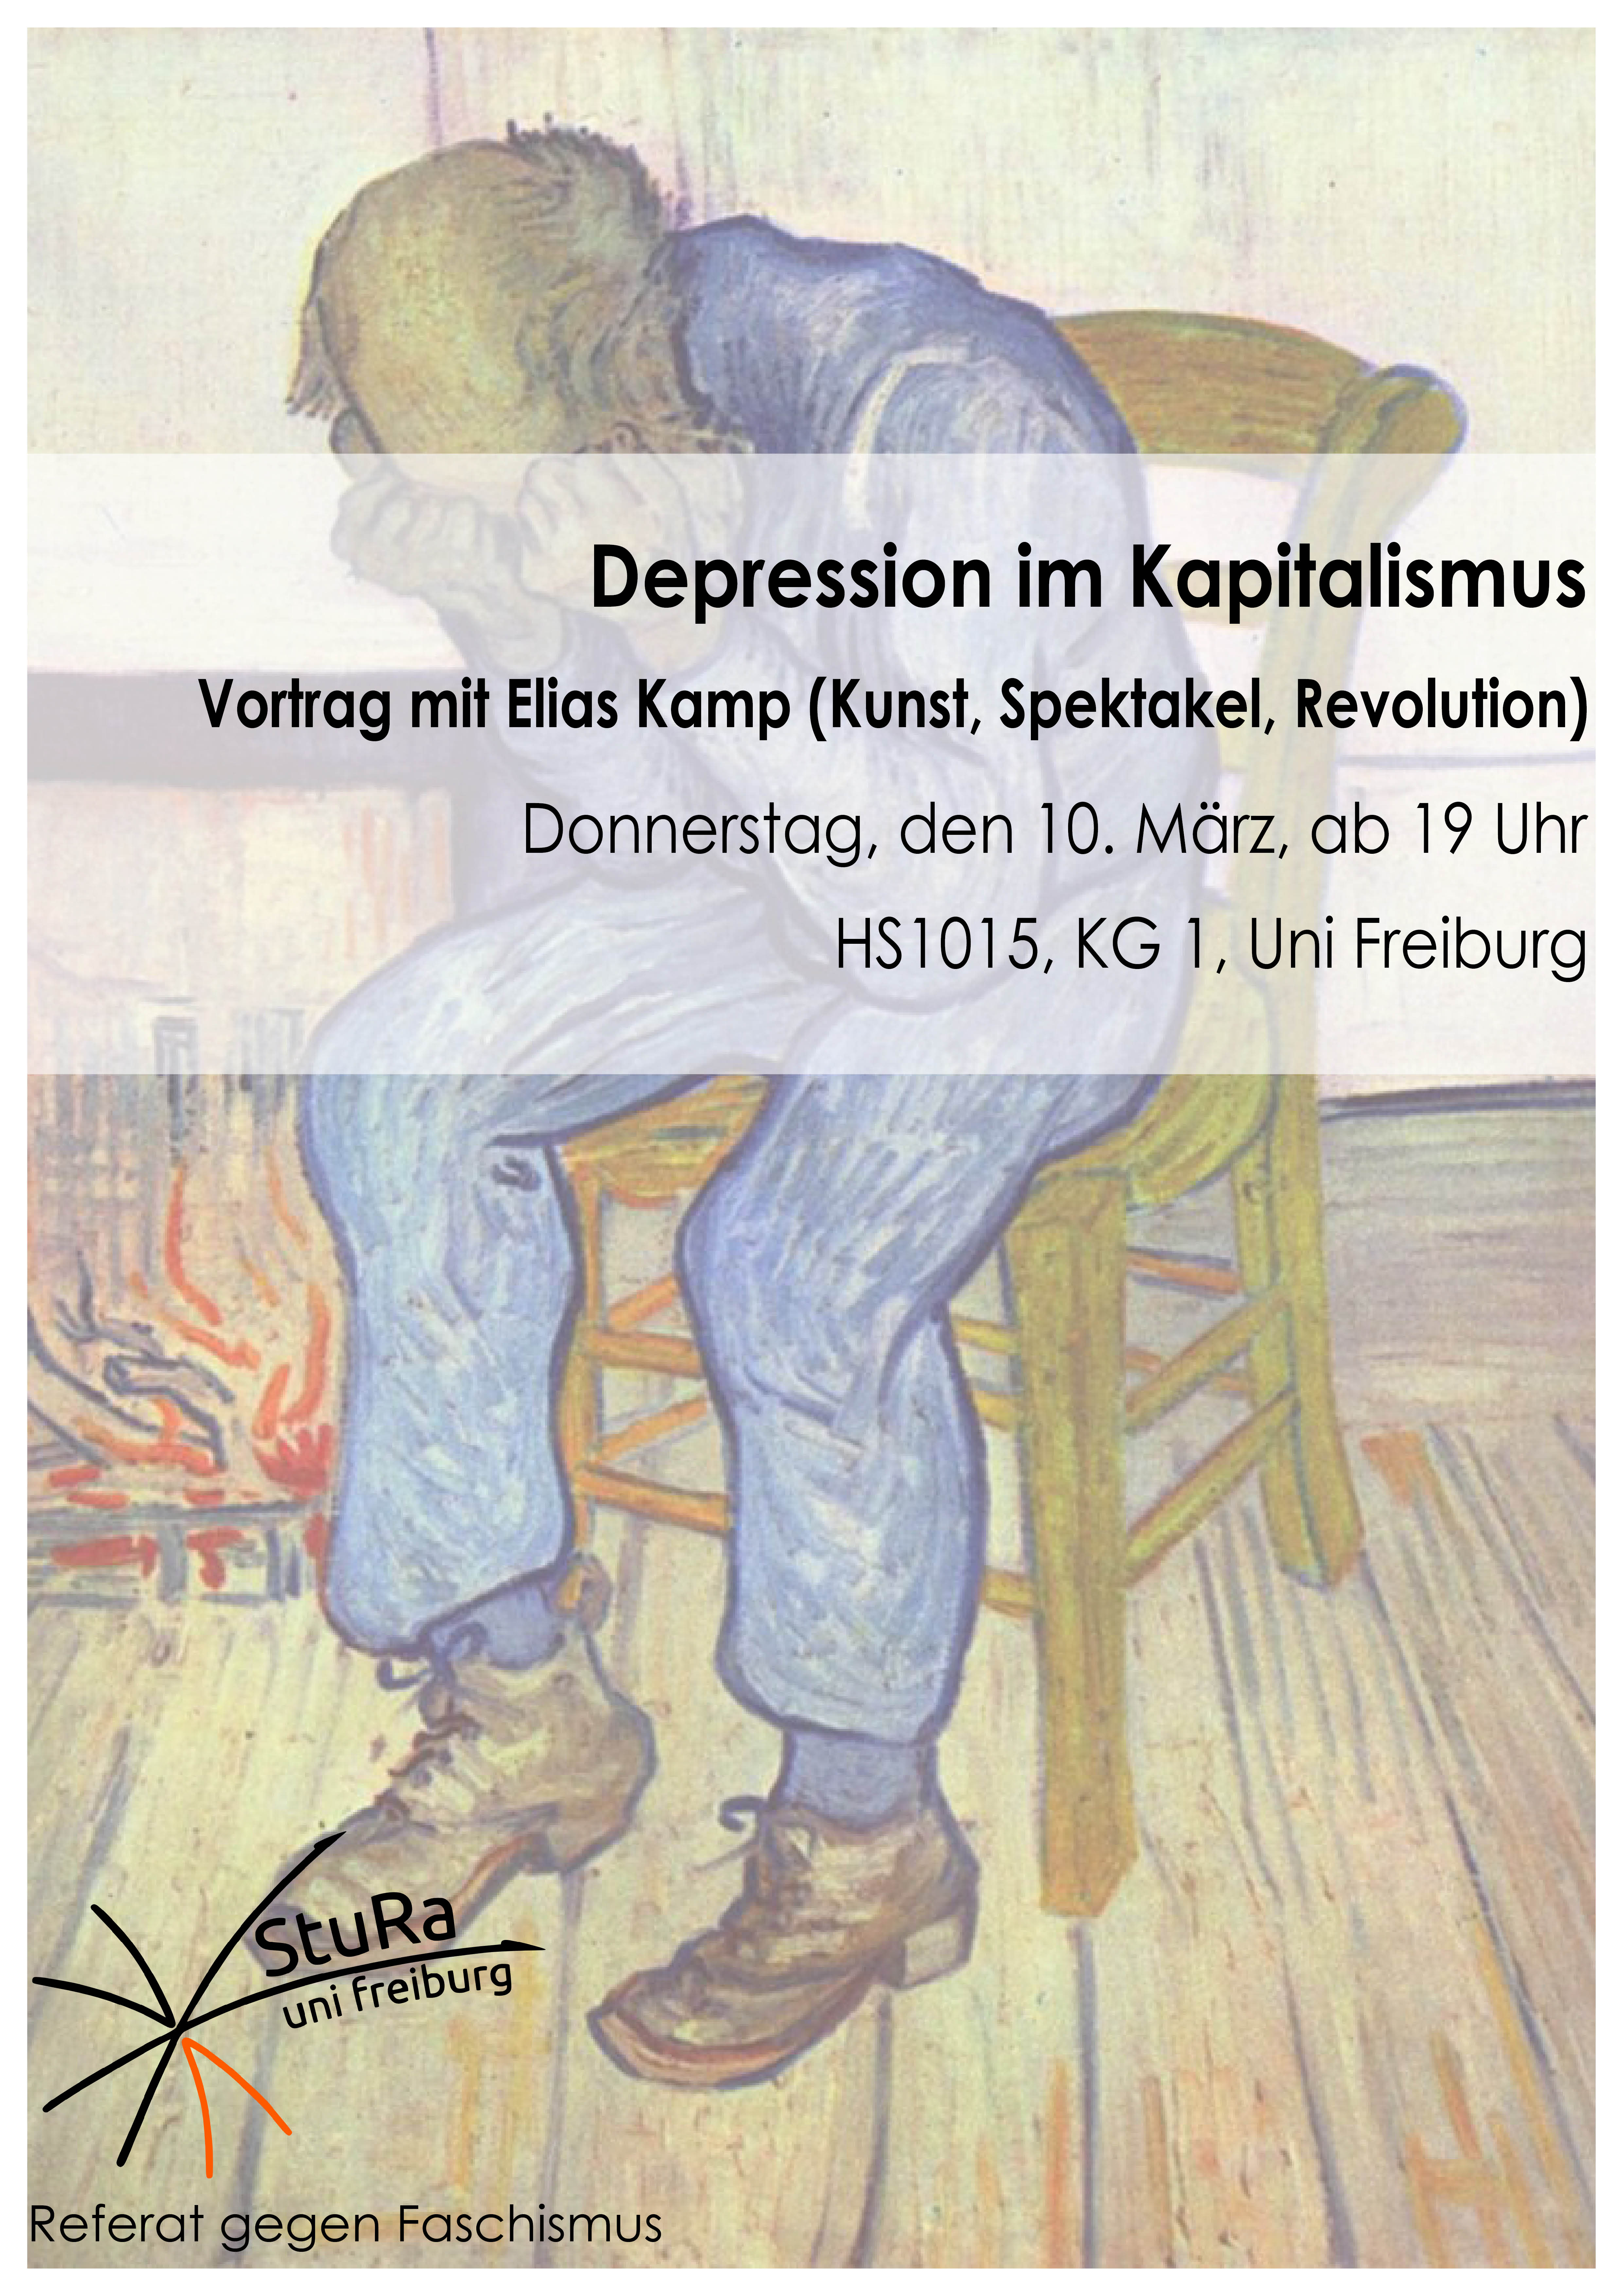 Depression im Kapitalismus Plakat Webversion